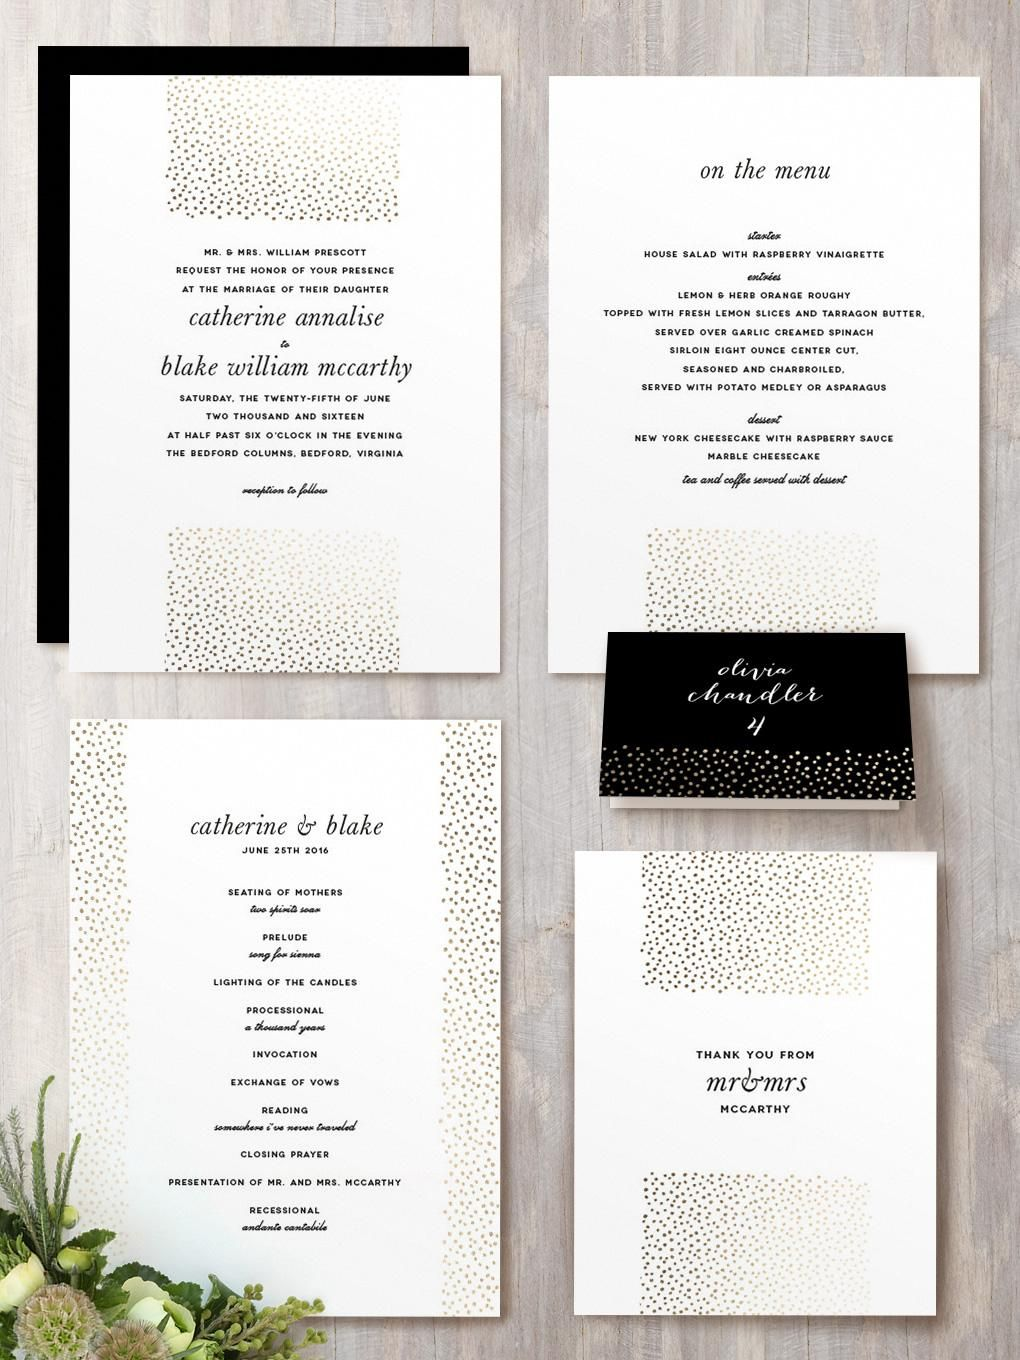 Delicate Dots Wedding Invitation Suite with Gold Foil on White Letterpress by Minted Artist  Ashley Hegarty